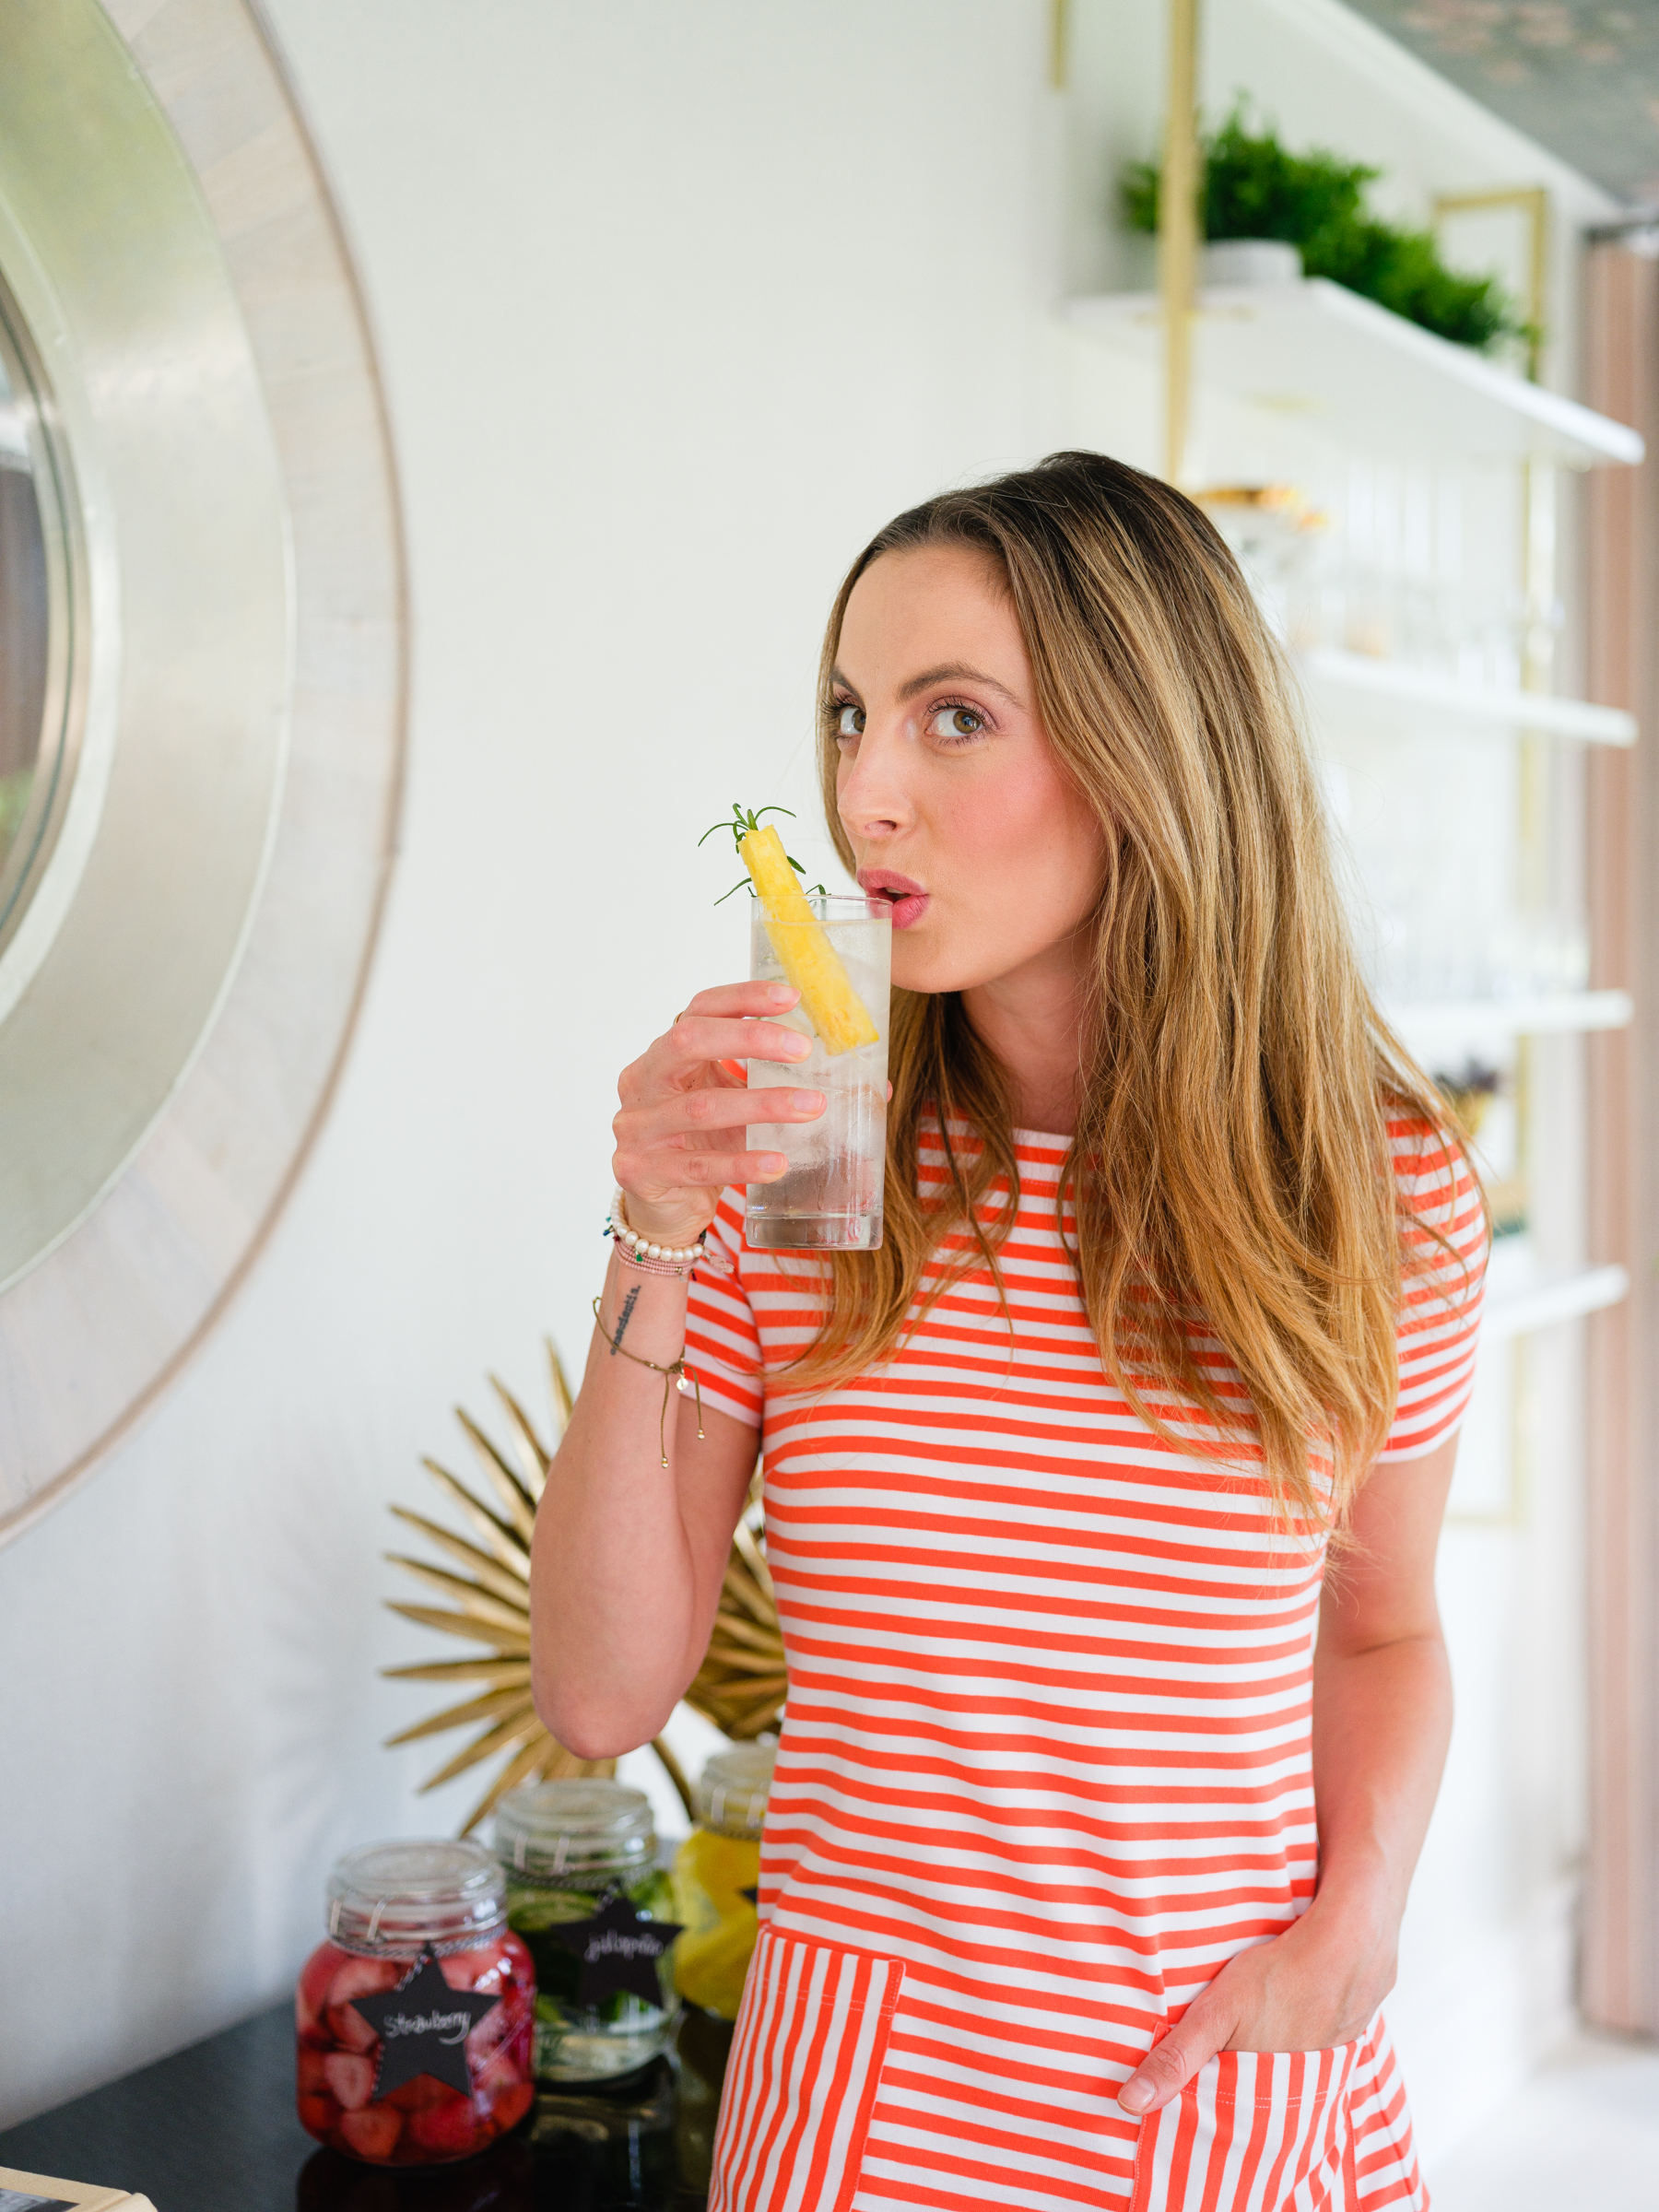 Eva Amurri shares how to make fruit infused tequila